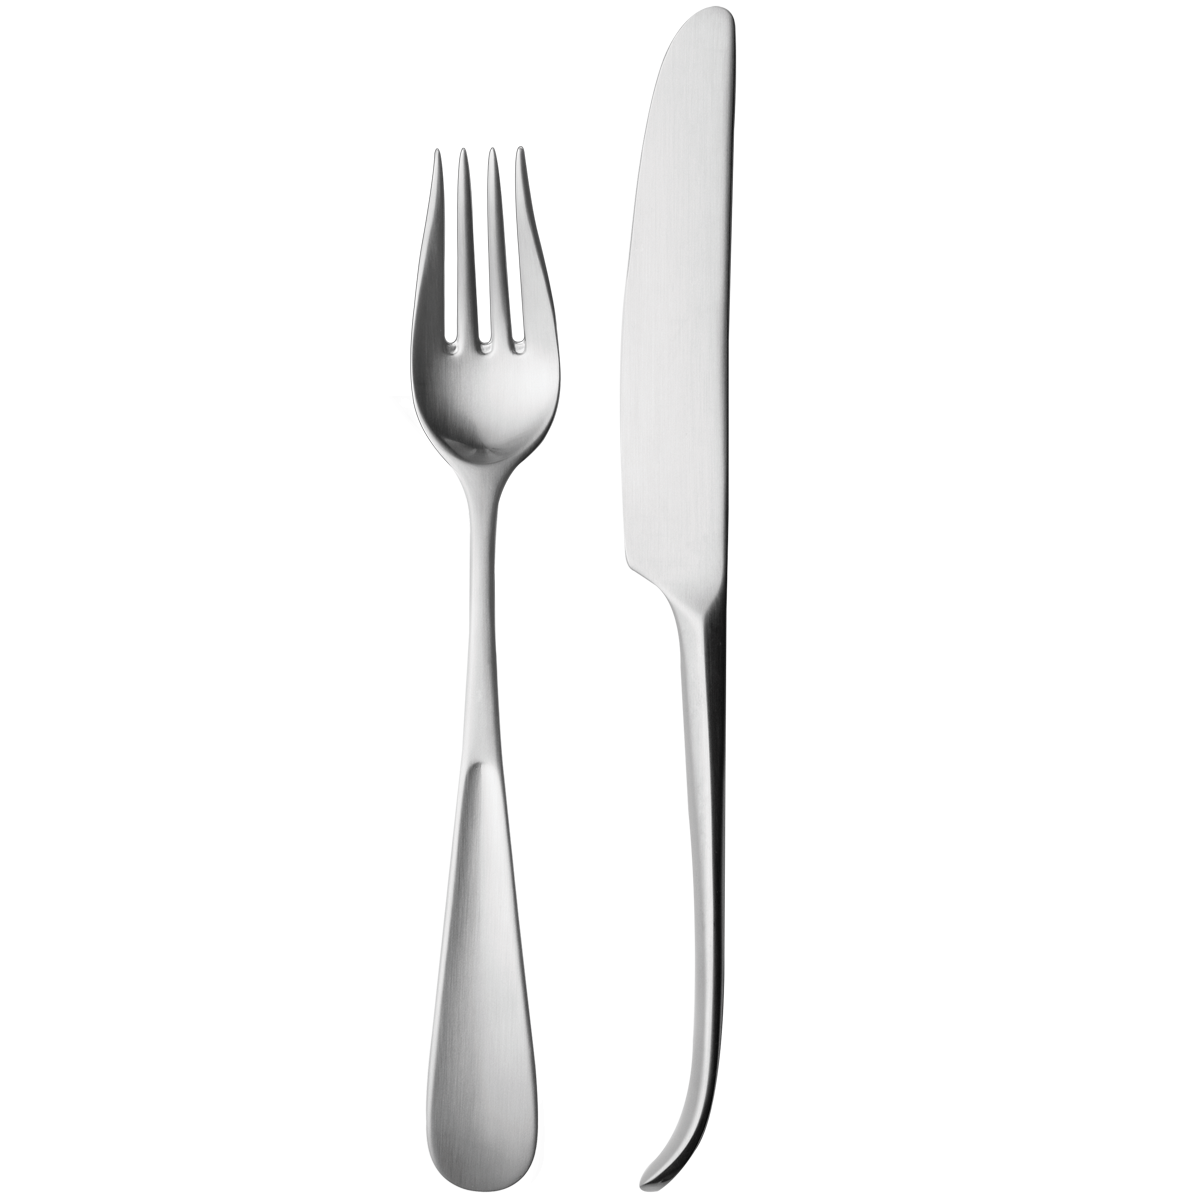 1200x1200 Knife And Fork Clip Art Cliparts And Others Inspiration 2